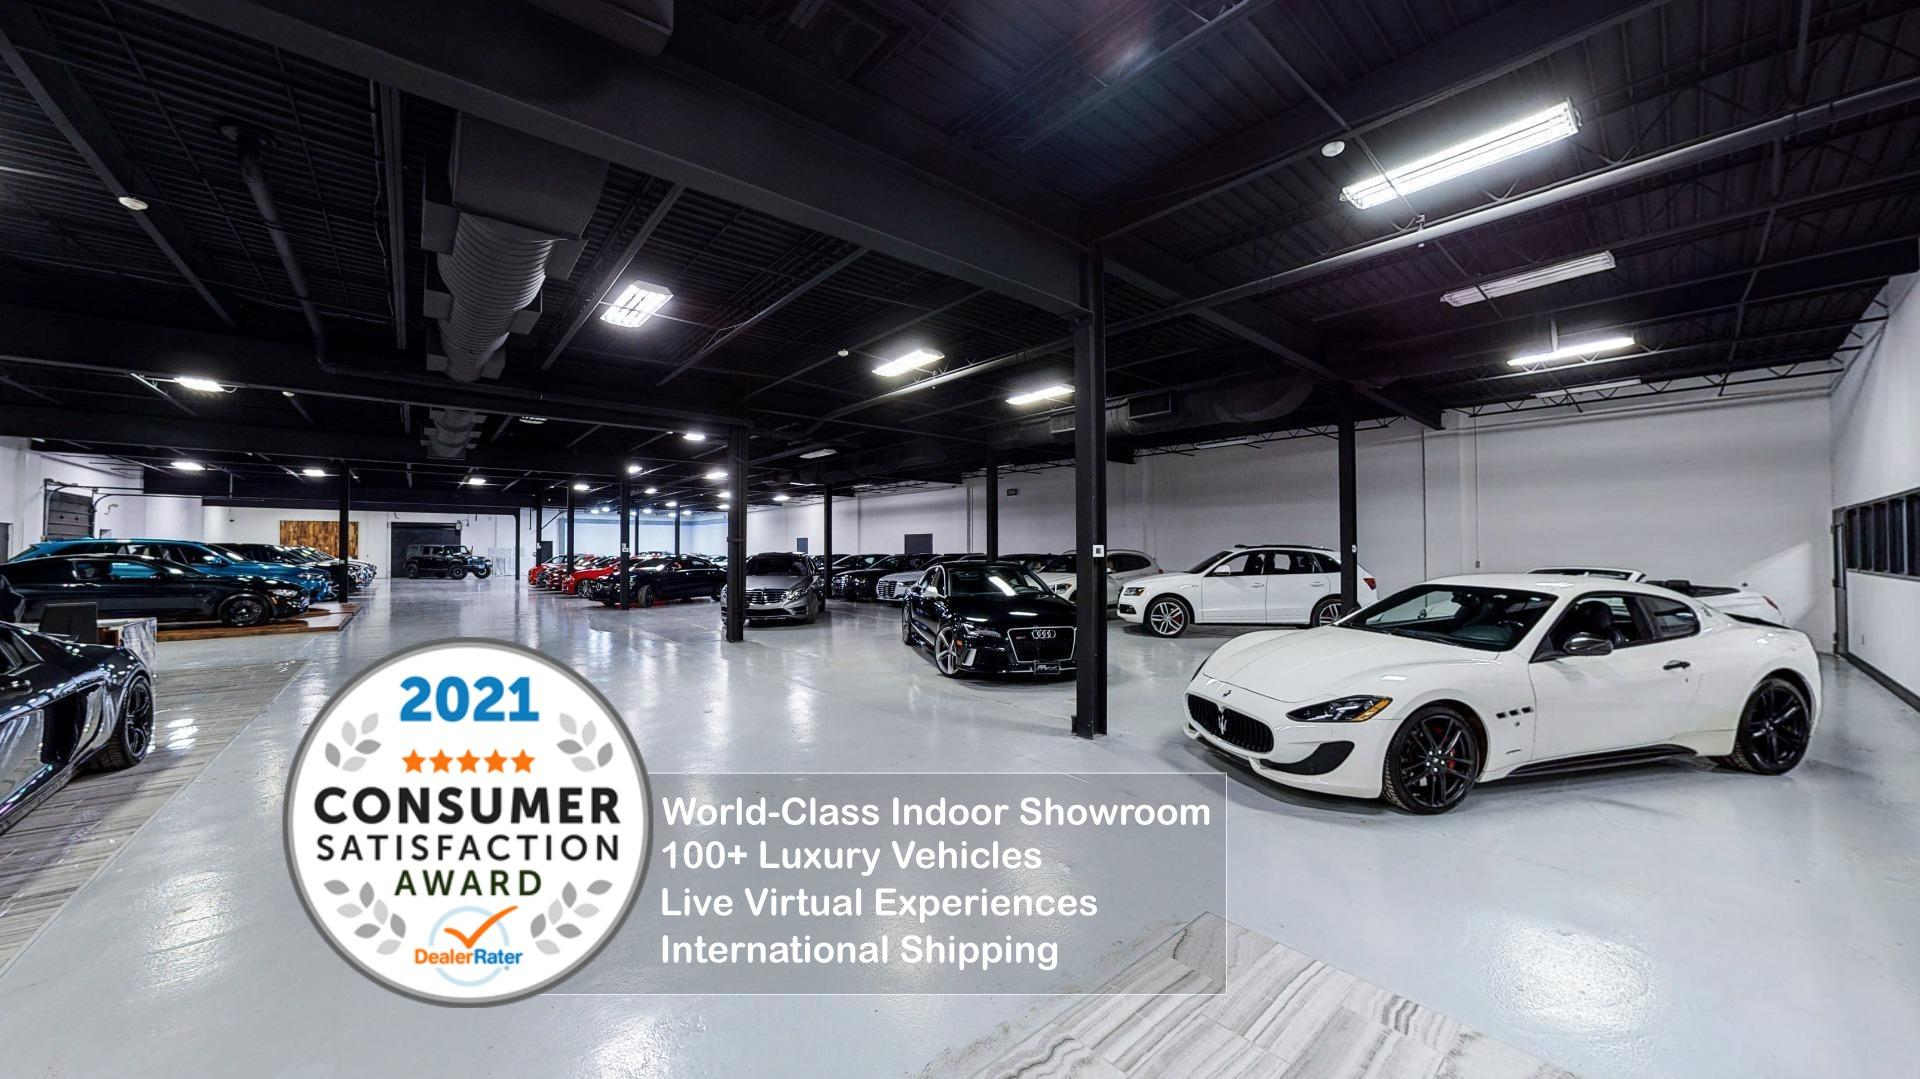 Used 2017 Maserati Ghibli S Q4 for sale $39,995 at Perfect Auto Collection in Akron OH 44310 3